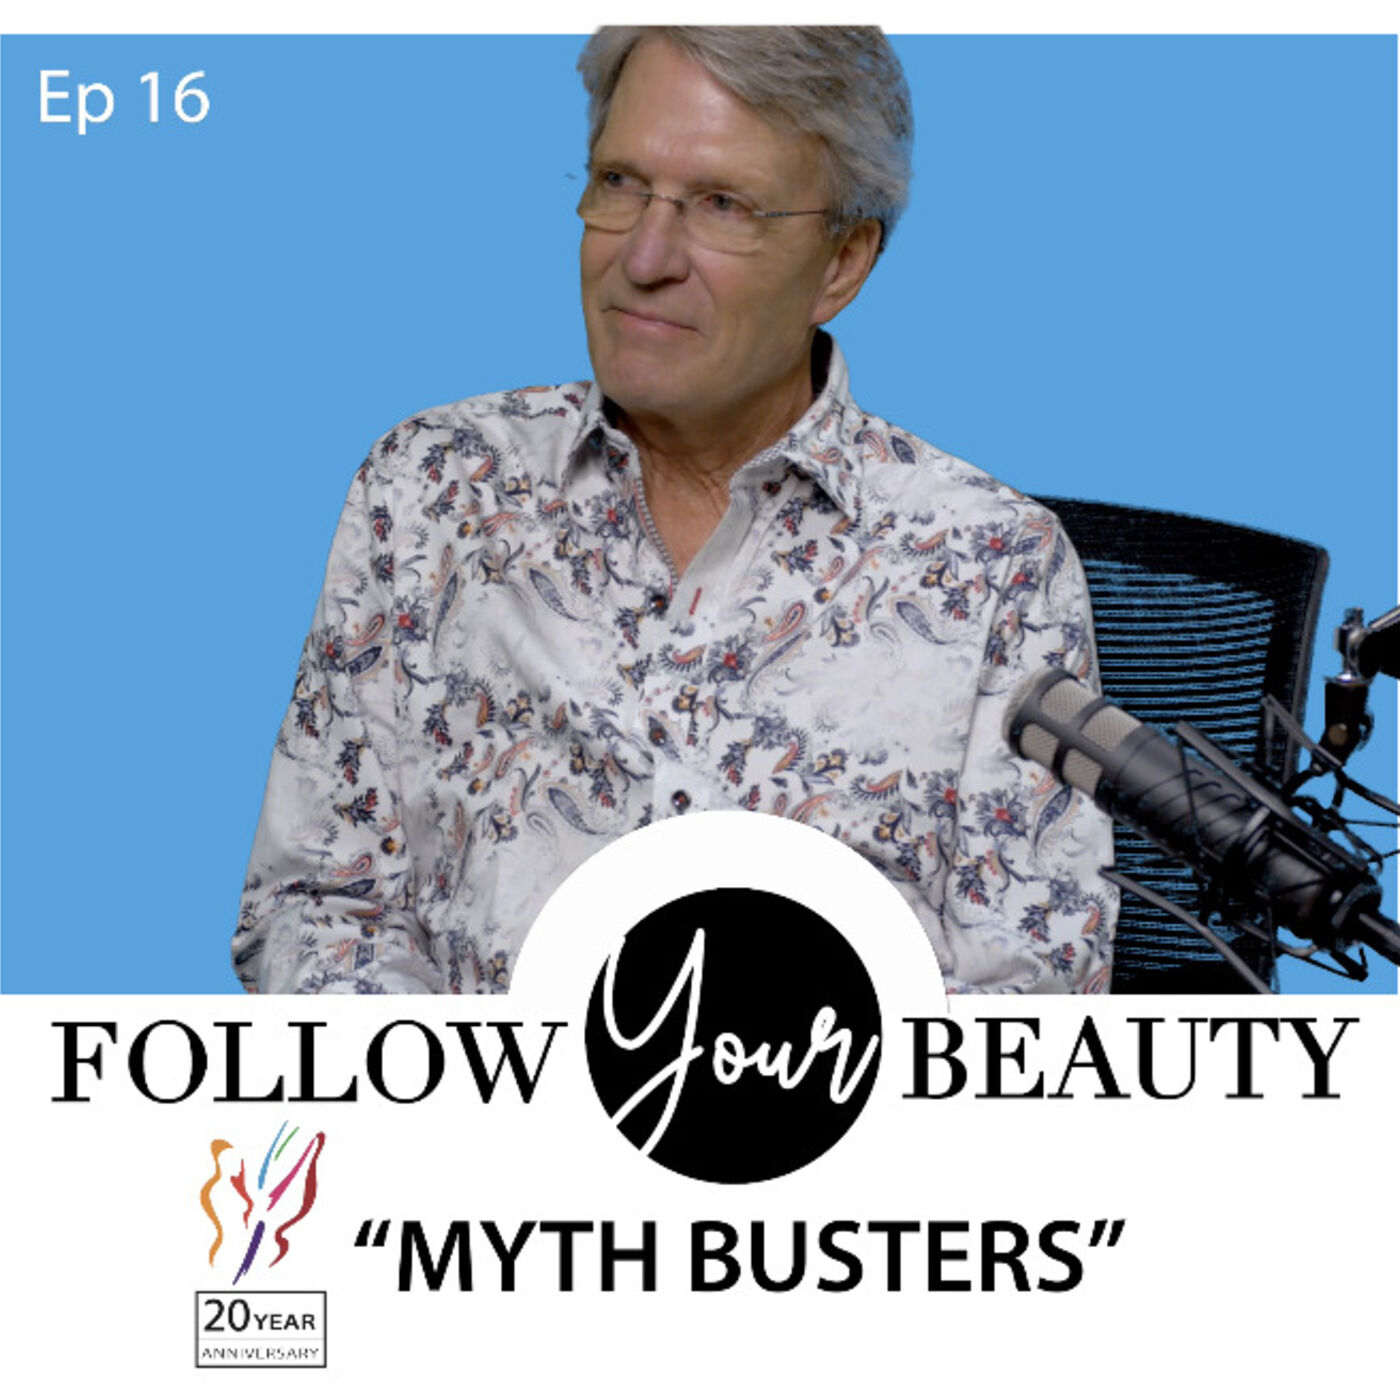 Follow Your Beauty Podcast - Myth Busters with Dr. Mendelsohn & Jerry